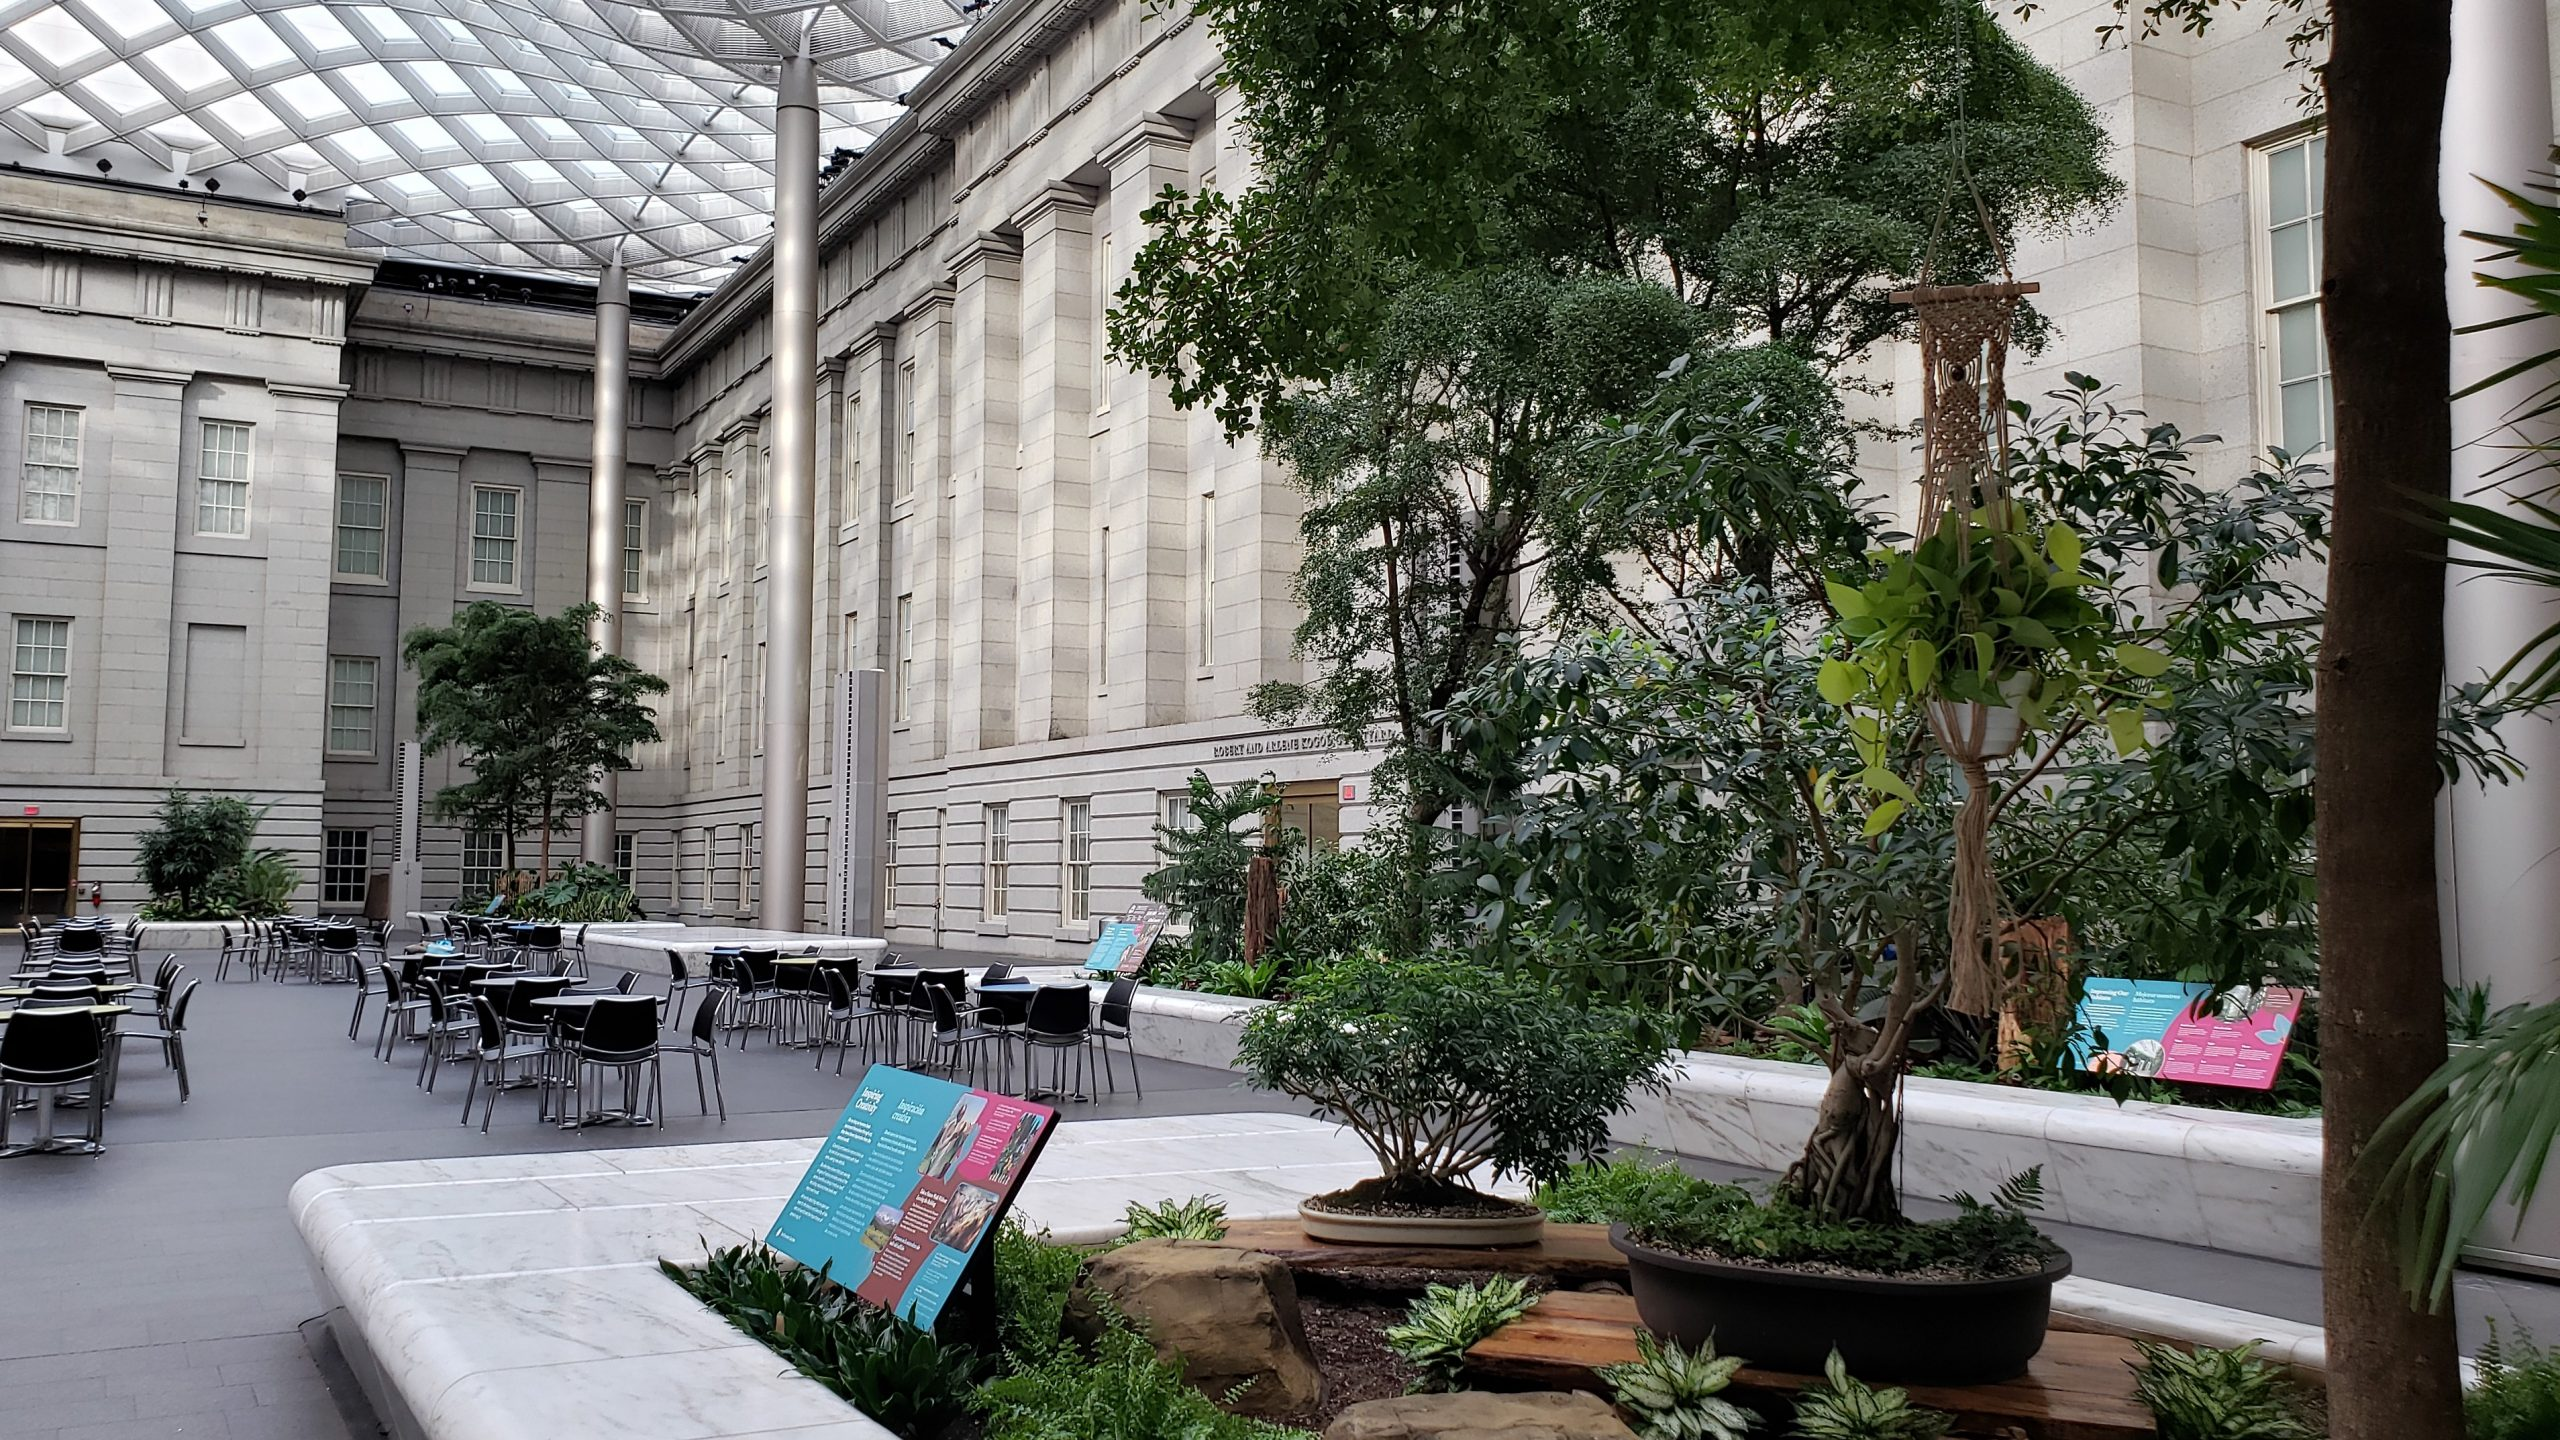 Inspiring Creativity Panel at The Great Indoors Exhibition inside the Robert and Arlene Kogod Courtyard